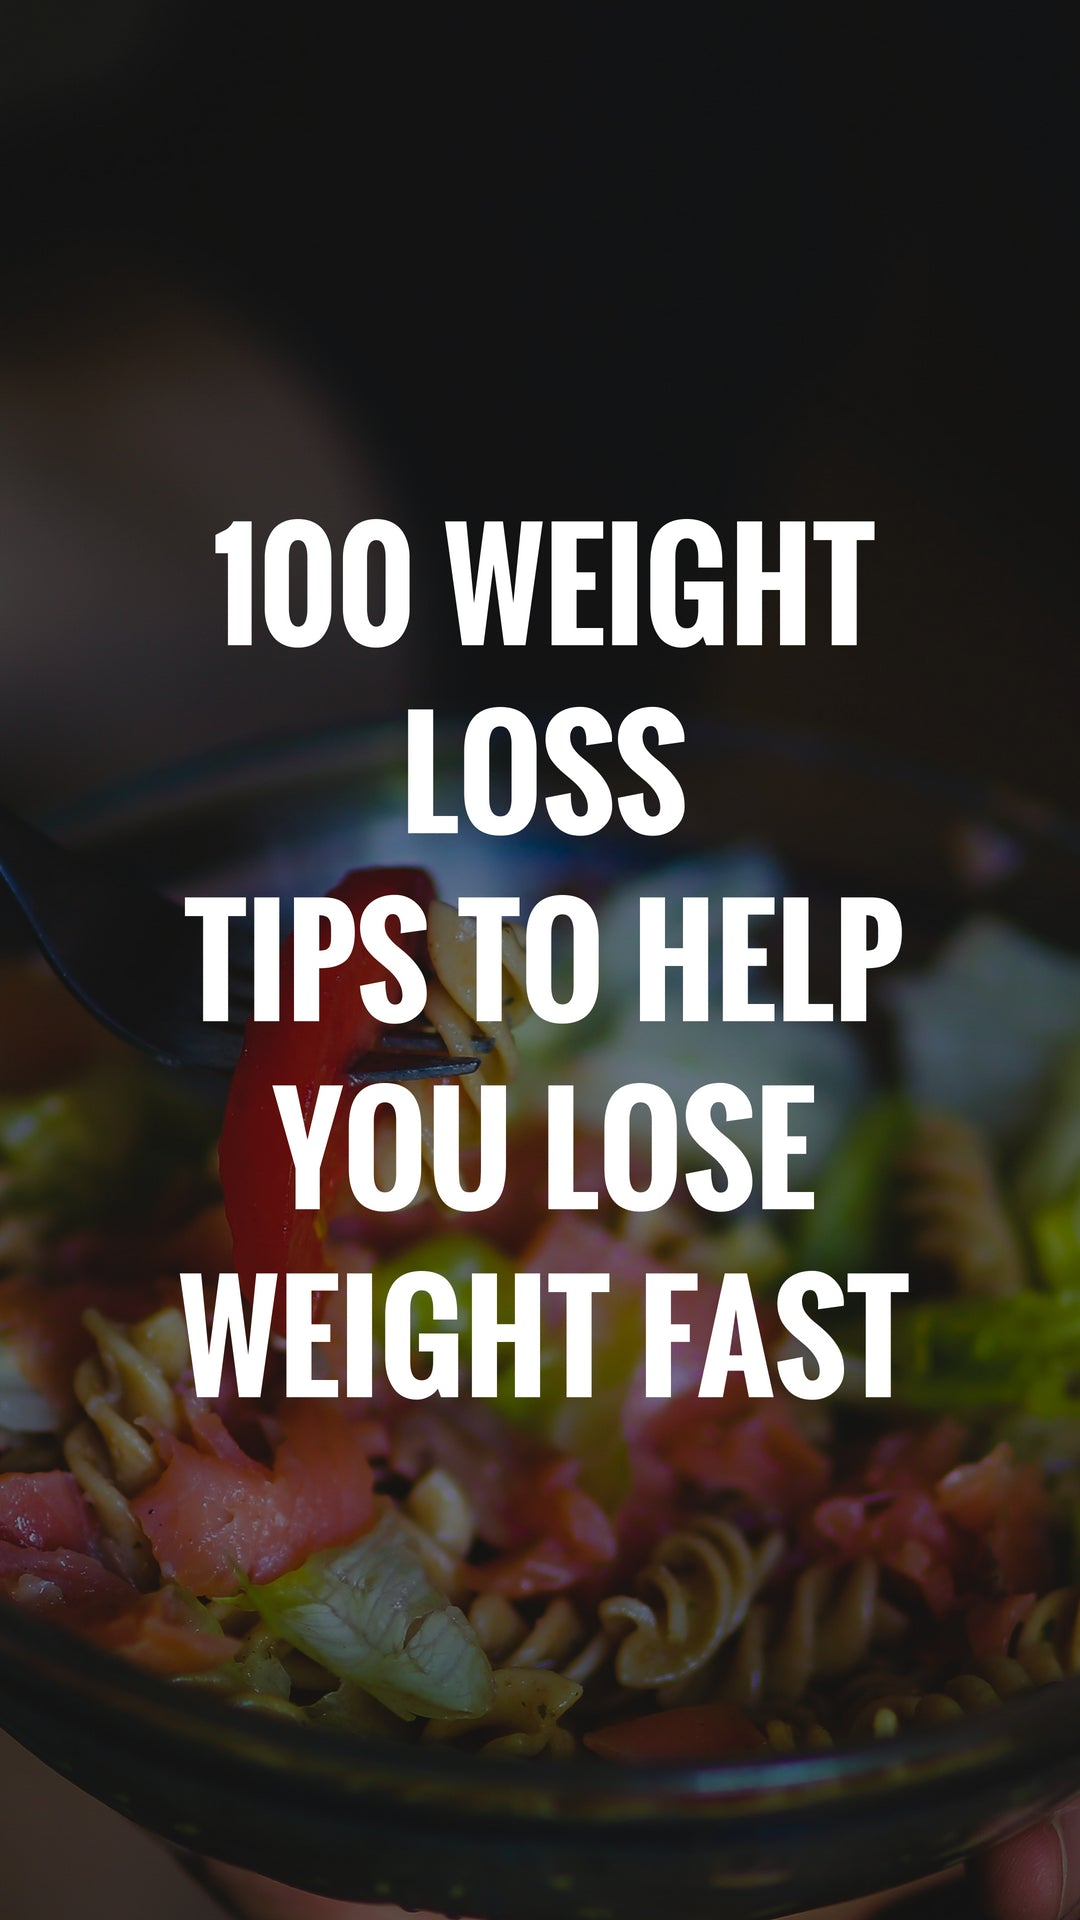 100 weight loss tips to help you lose weight